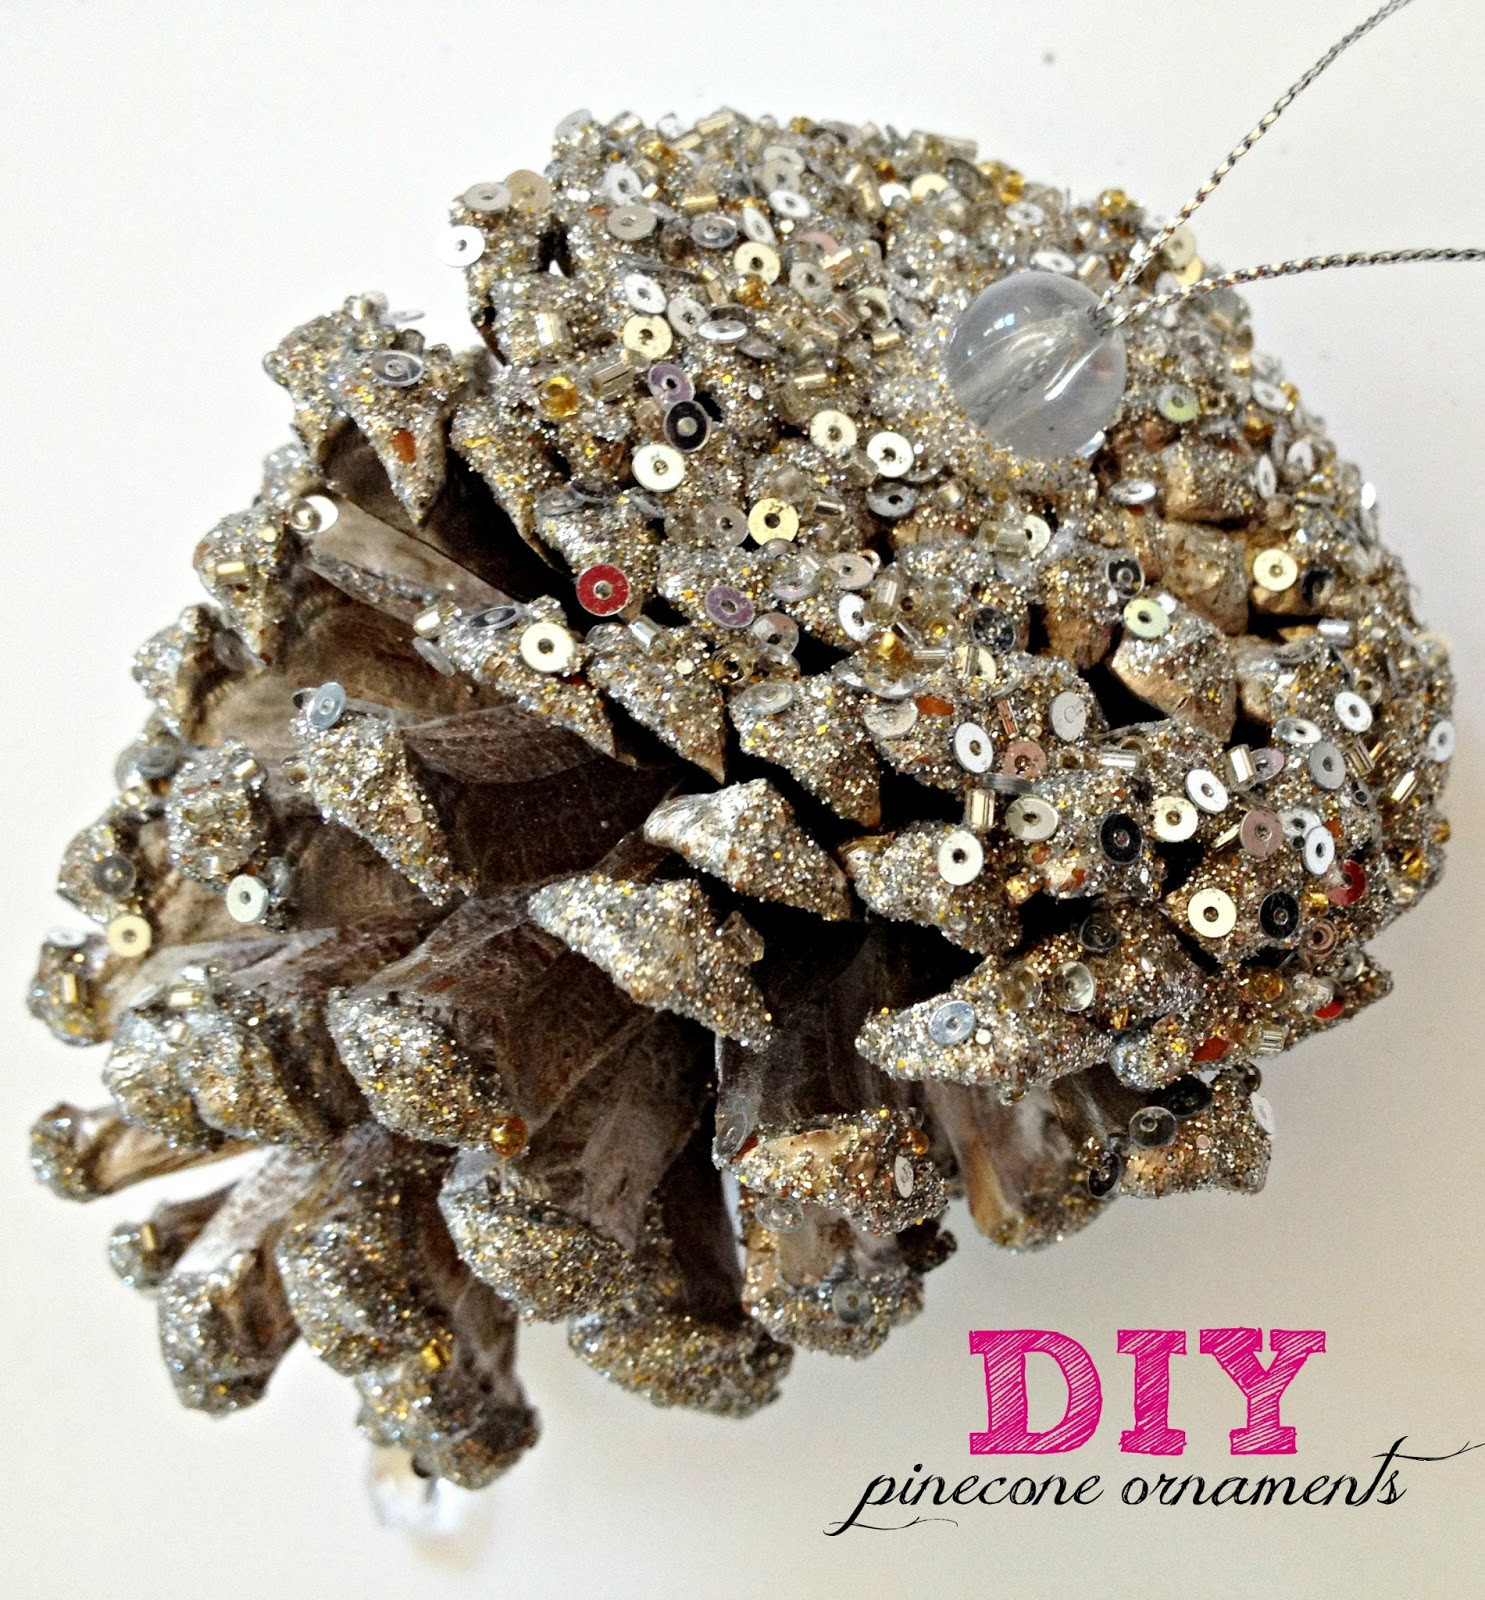 New Livelovediy Diy Christmas ornaments Ideas ornaments On Christmas Tree Of Delightful 46 Images ornaments On Christmas Tree